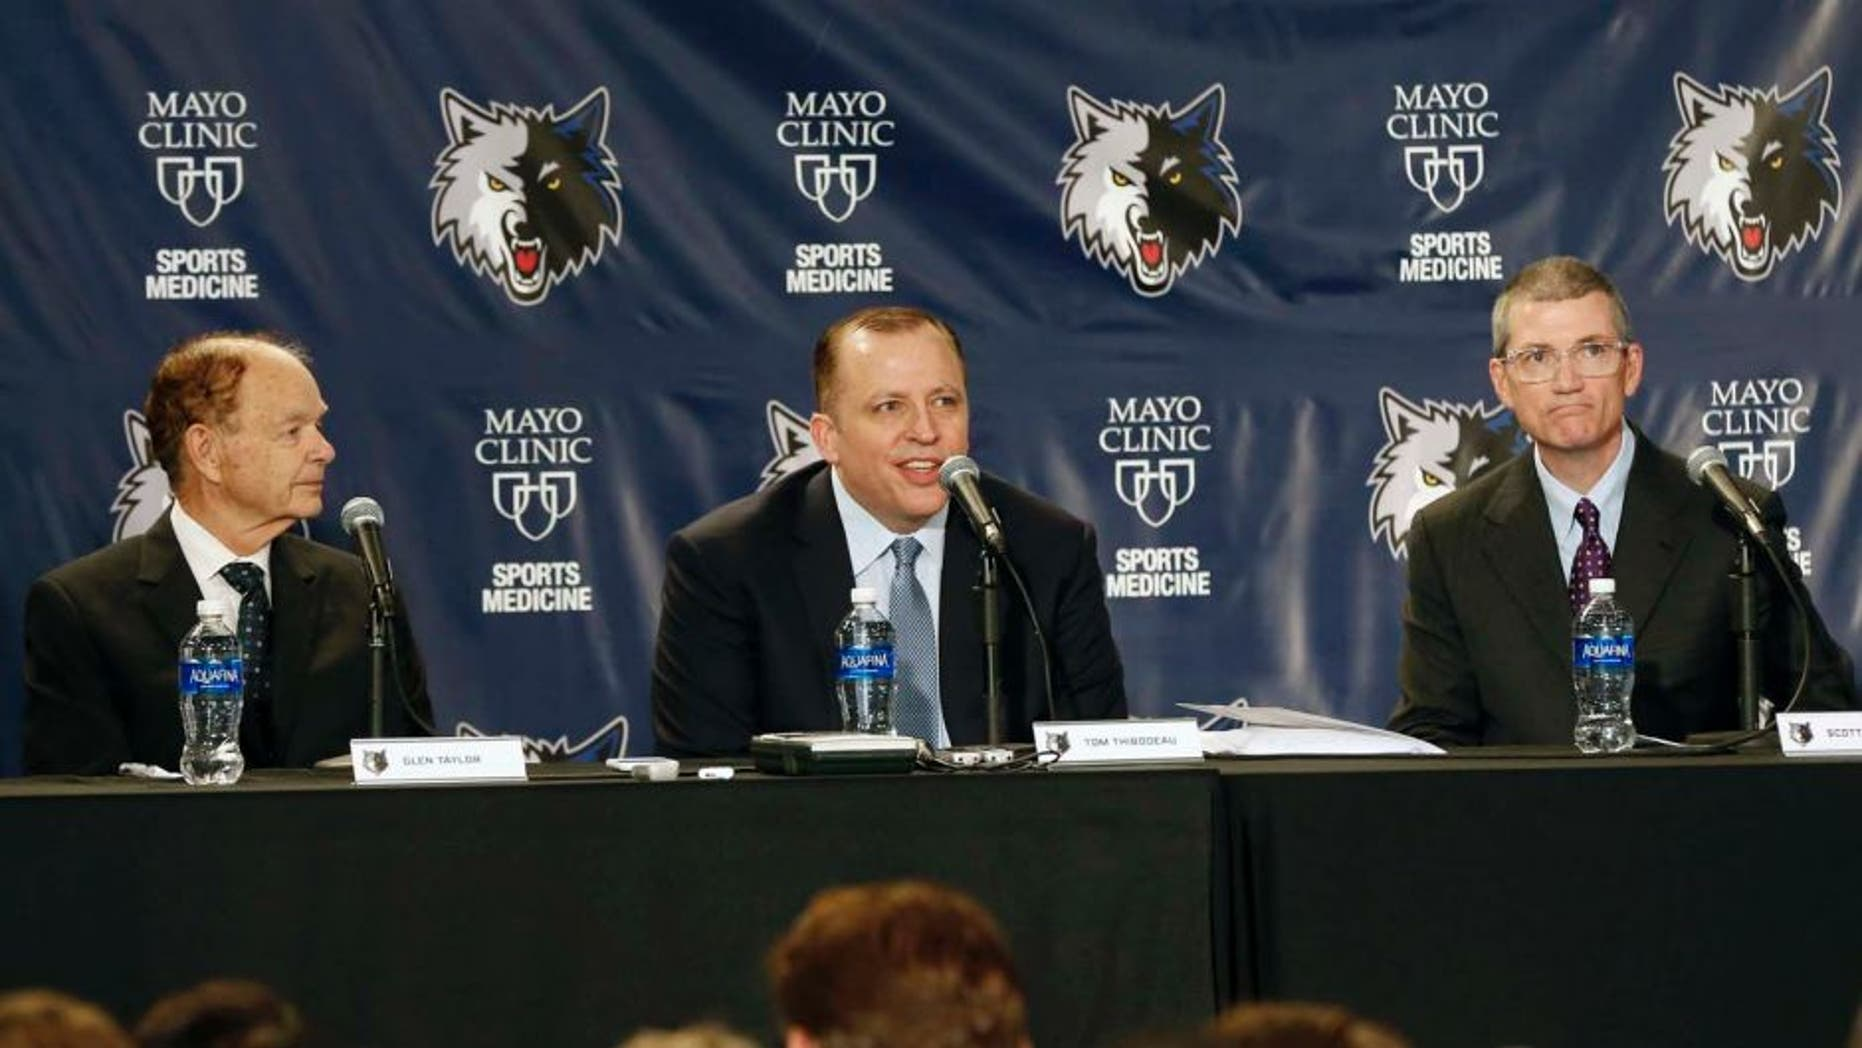 Tuesday, April 26: Tom Thibodeau (center) addresses the media and a gathering of fans after he was introduced as the new Minnesota Timberwolves head coach. At left is Timberwolves owner Glen Taylor. At right is new general manager Scott Layden who was also introduced.